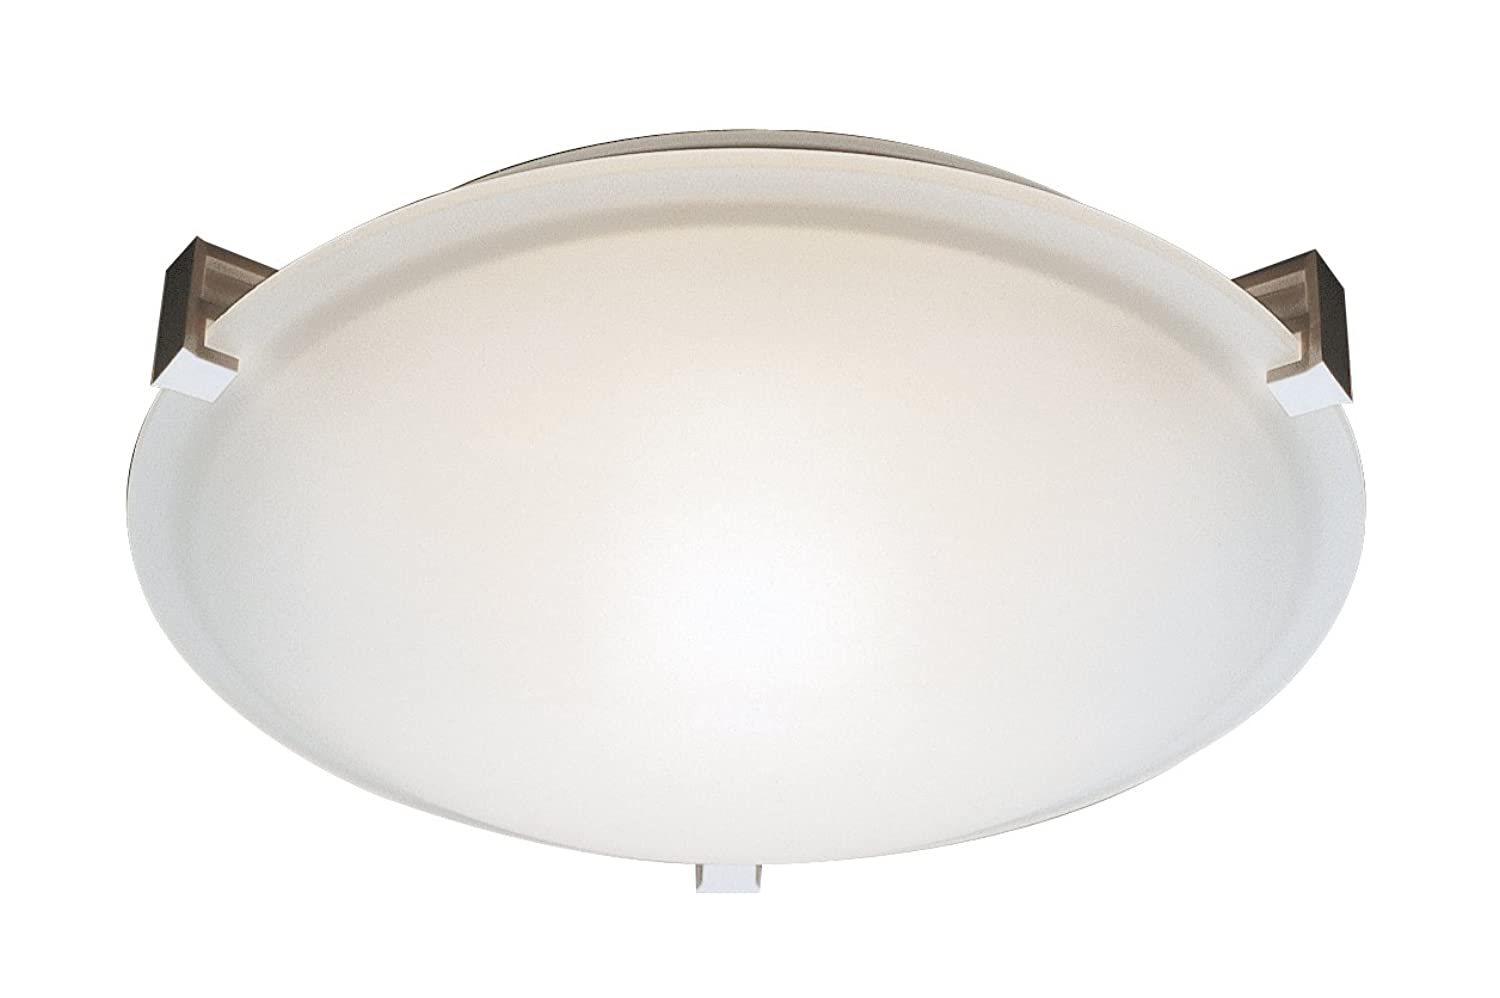 Trans Globe Lighting Frosted Clipped Flush Mount, 12, Brushed Nickel by Trans Globe Lighting